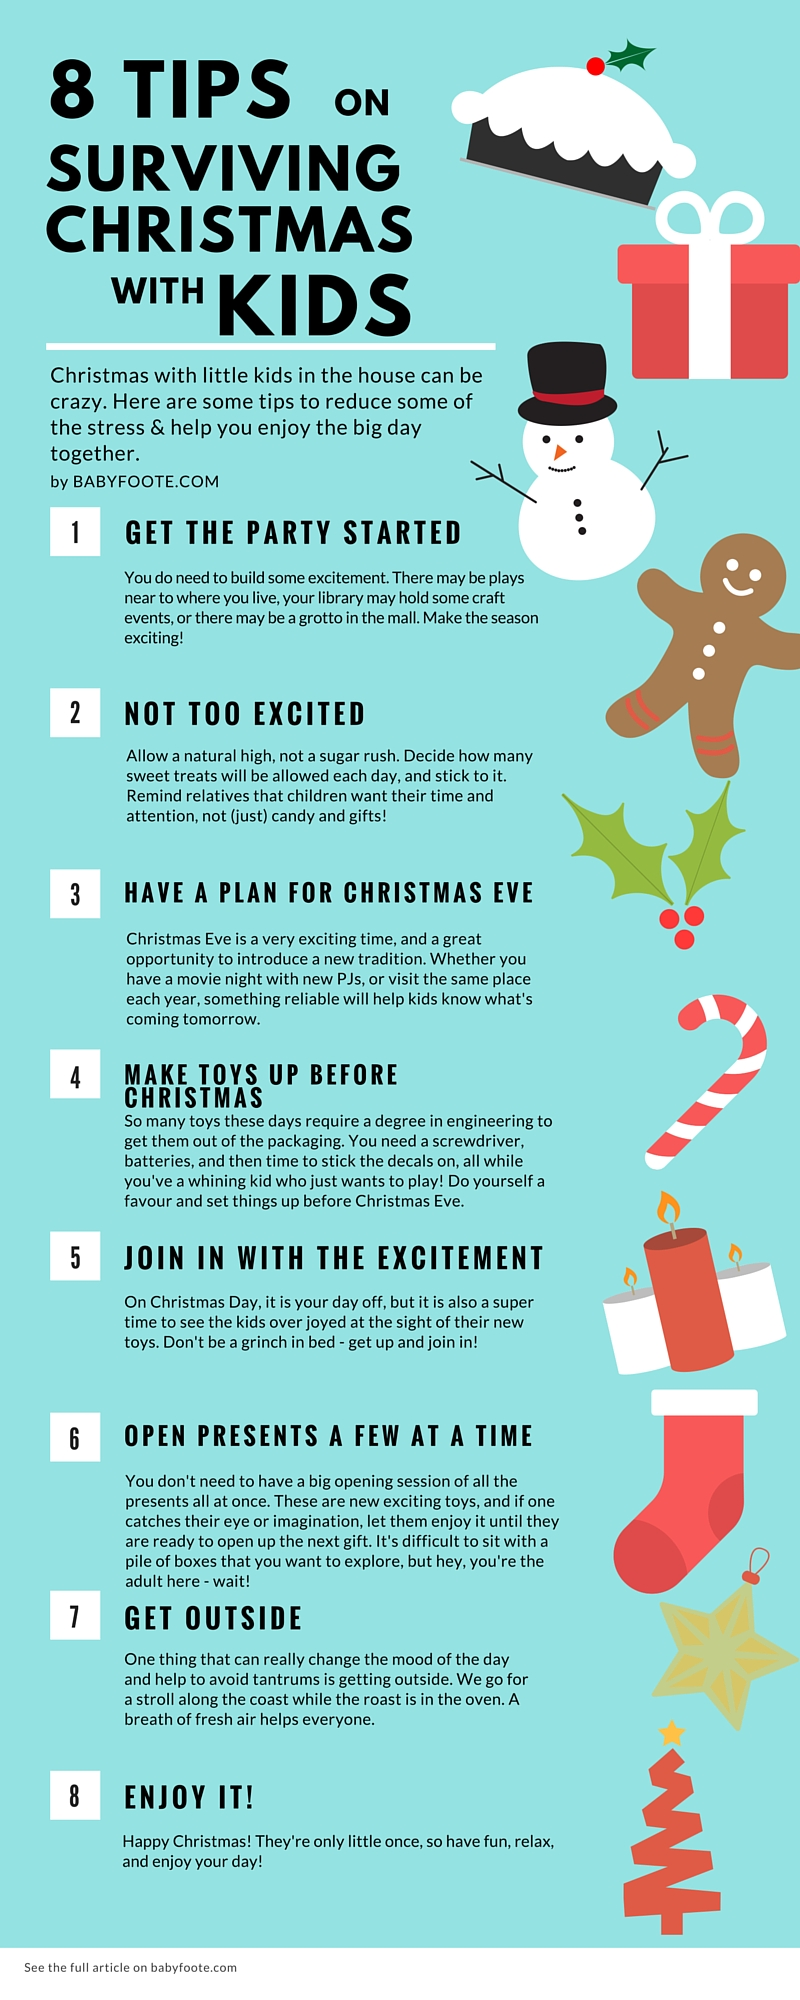 8 tips fin surviving Christmas with little kids - planning for the big day, opening presents and making sure the day goes as smoothly and enjoyably for everyone!